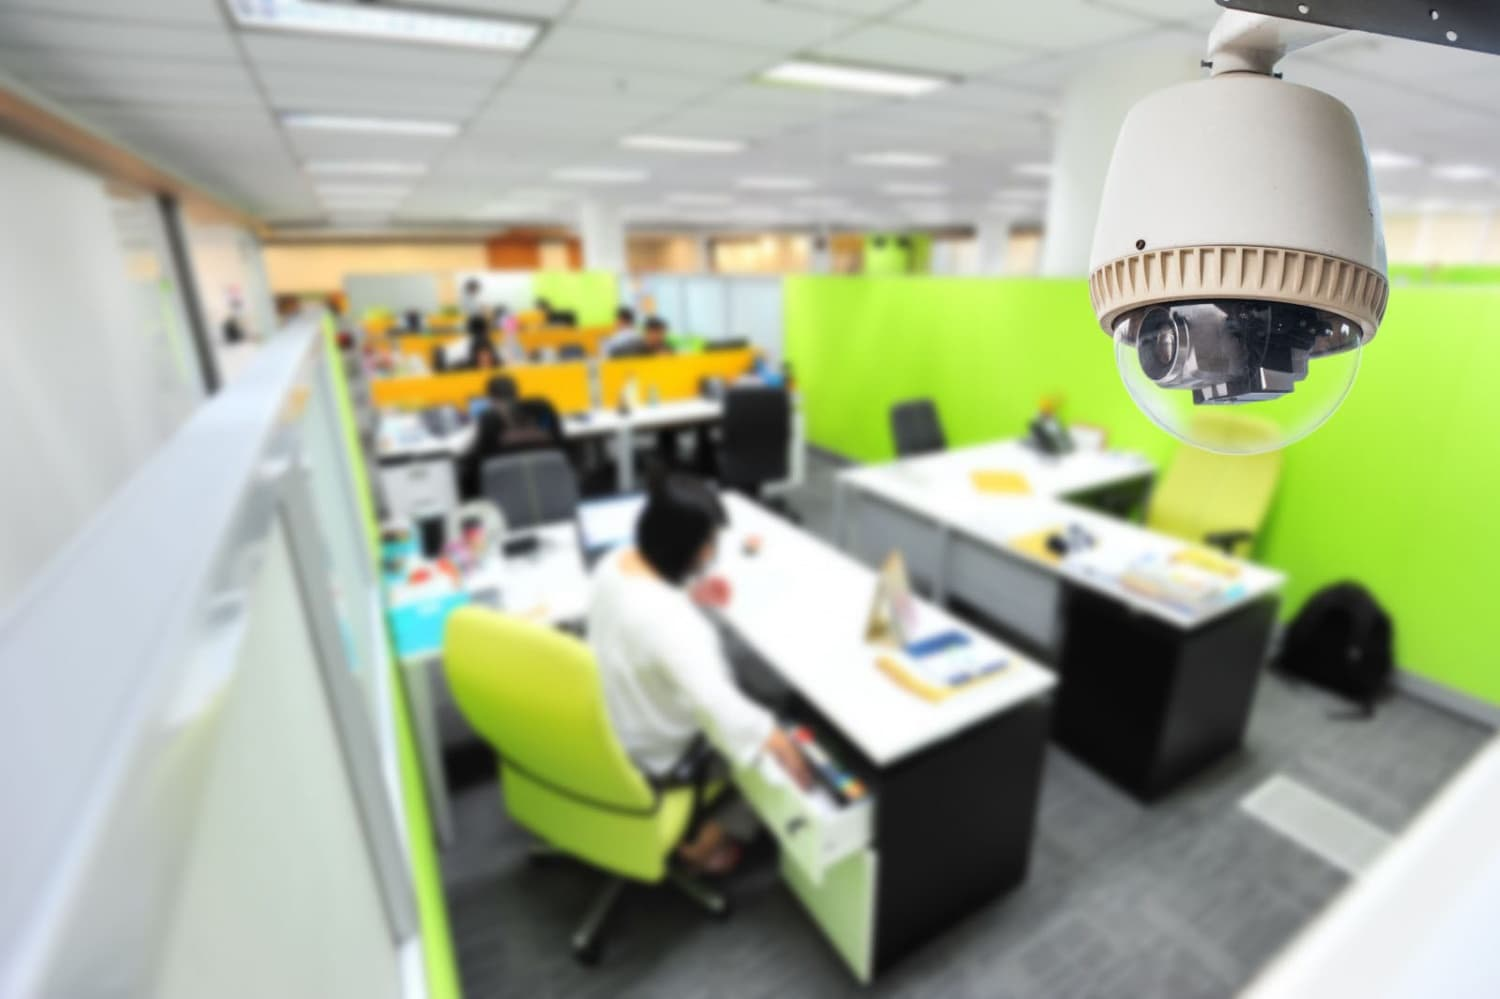 Dome camera for offices